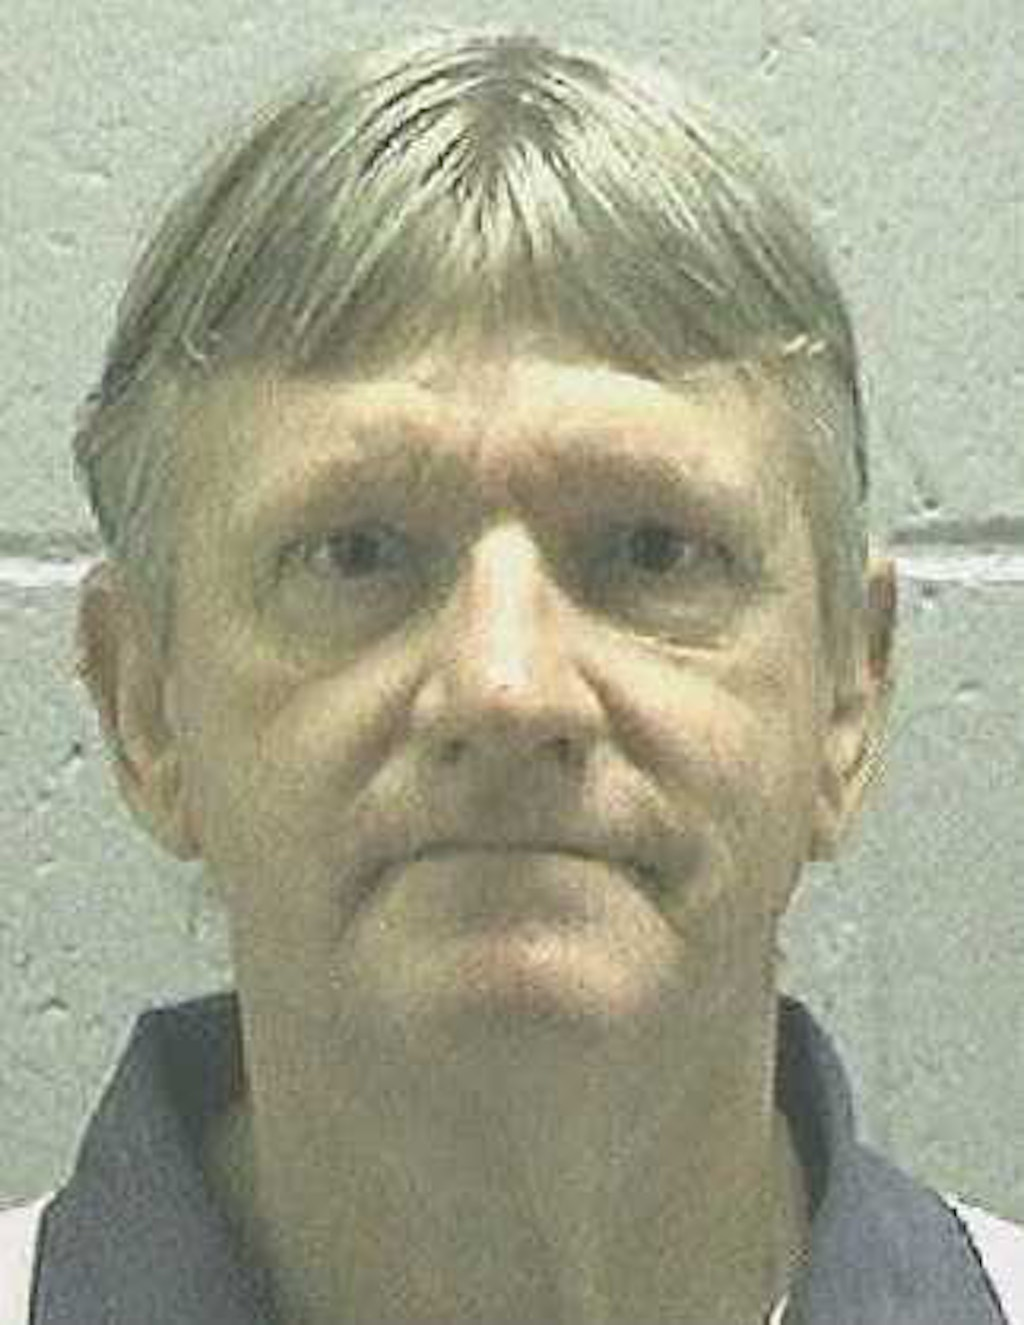 Georgia Executes Donnie Lance Over Protests of Victim's Children After Denying DNA Testing